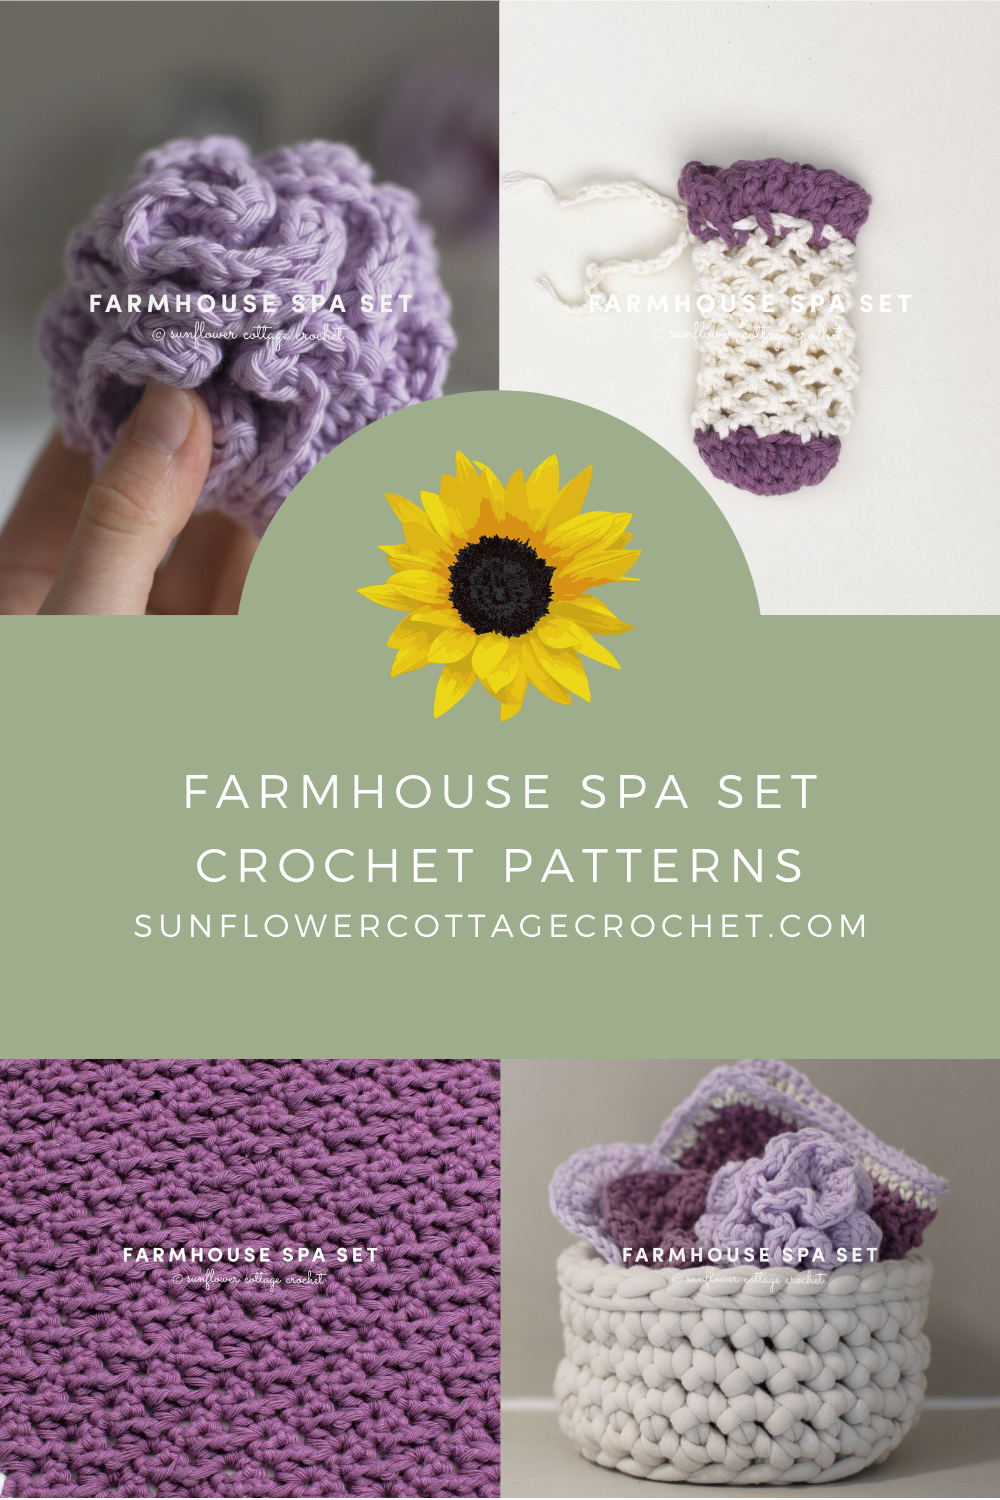 Farmhouse Spa Set